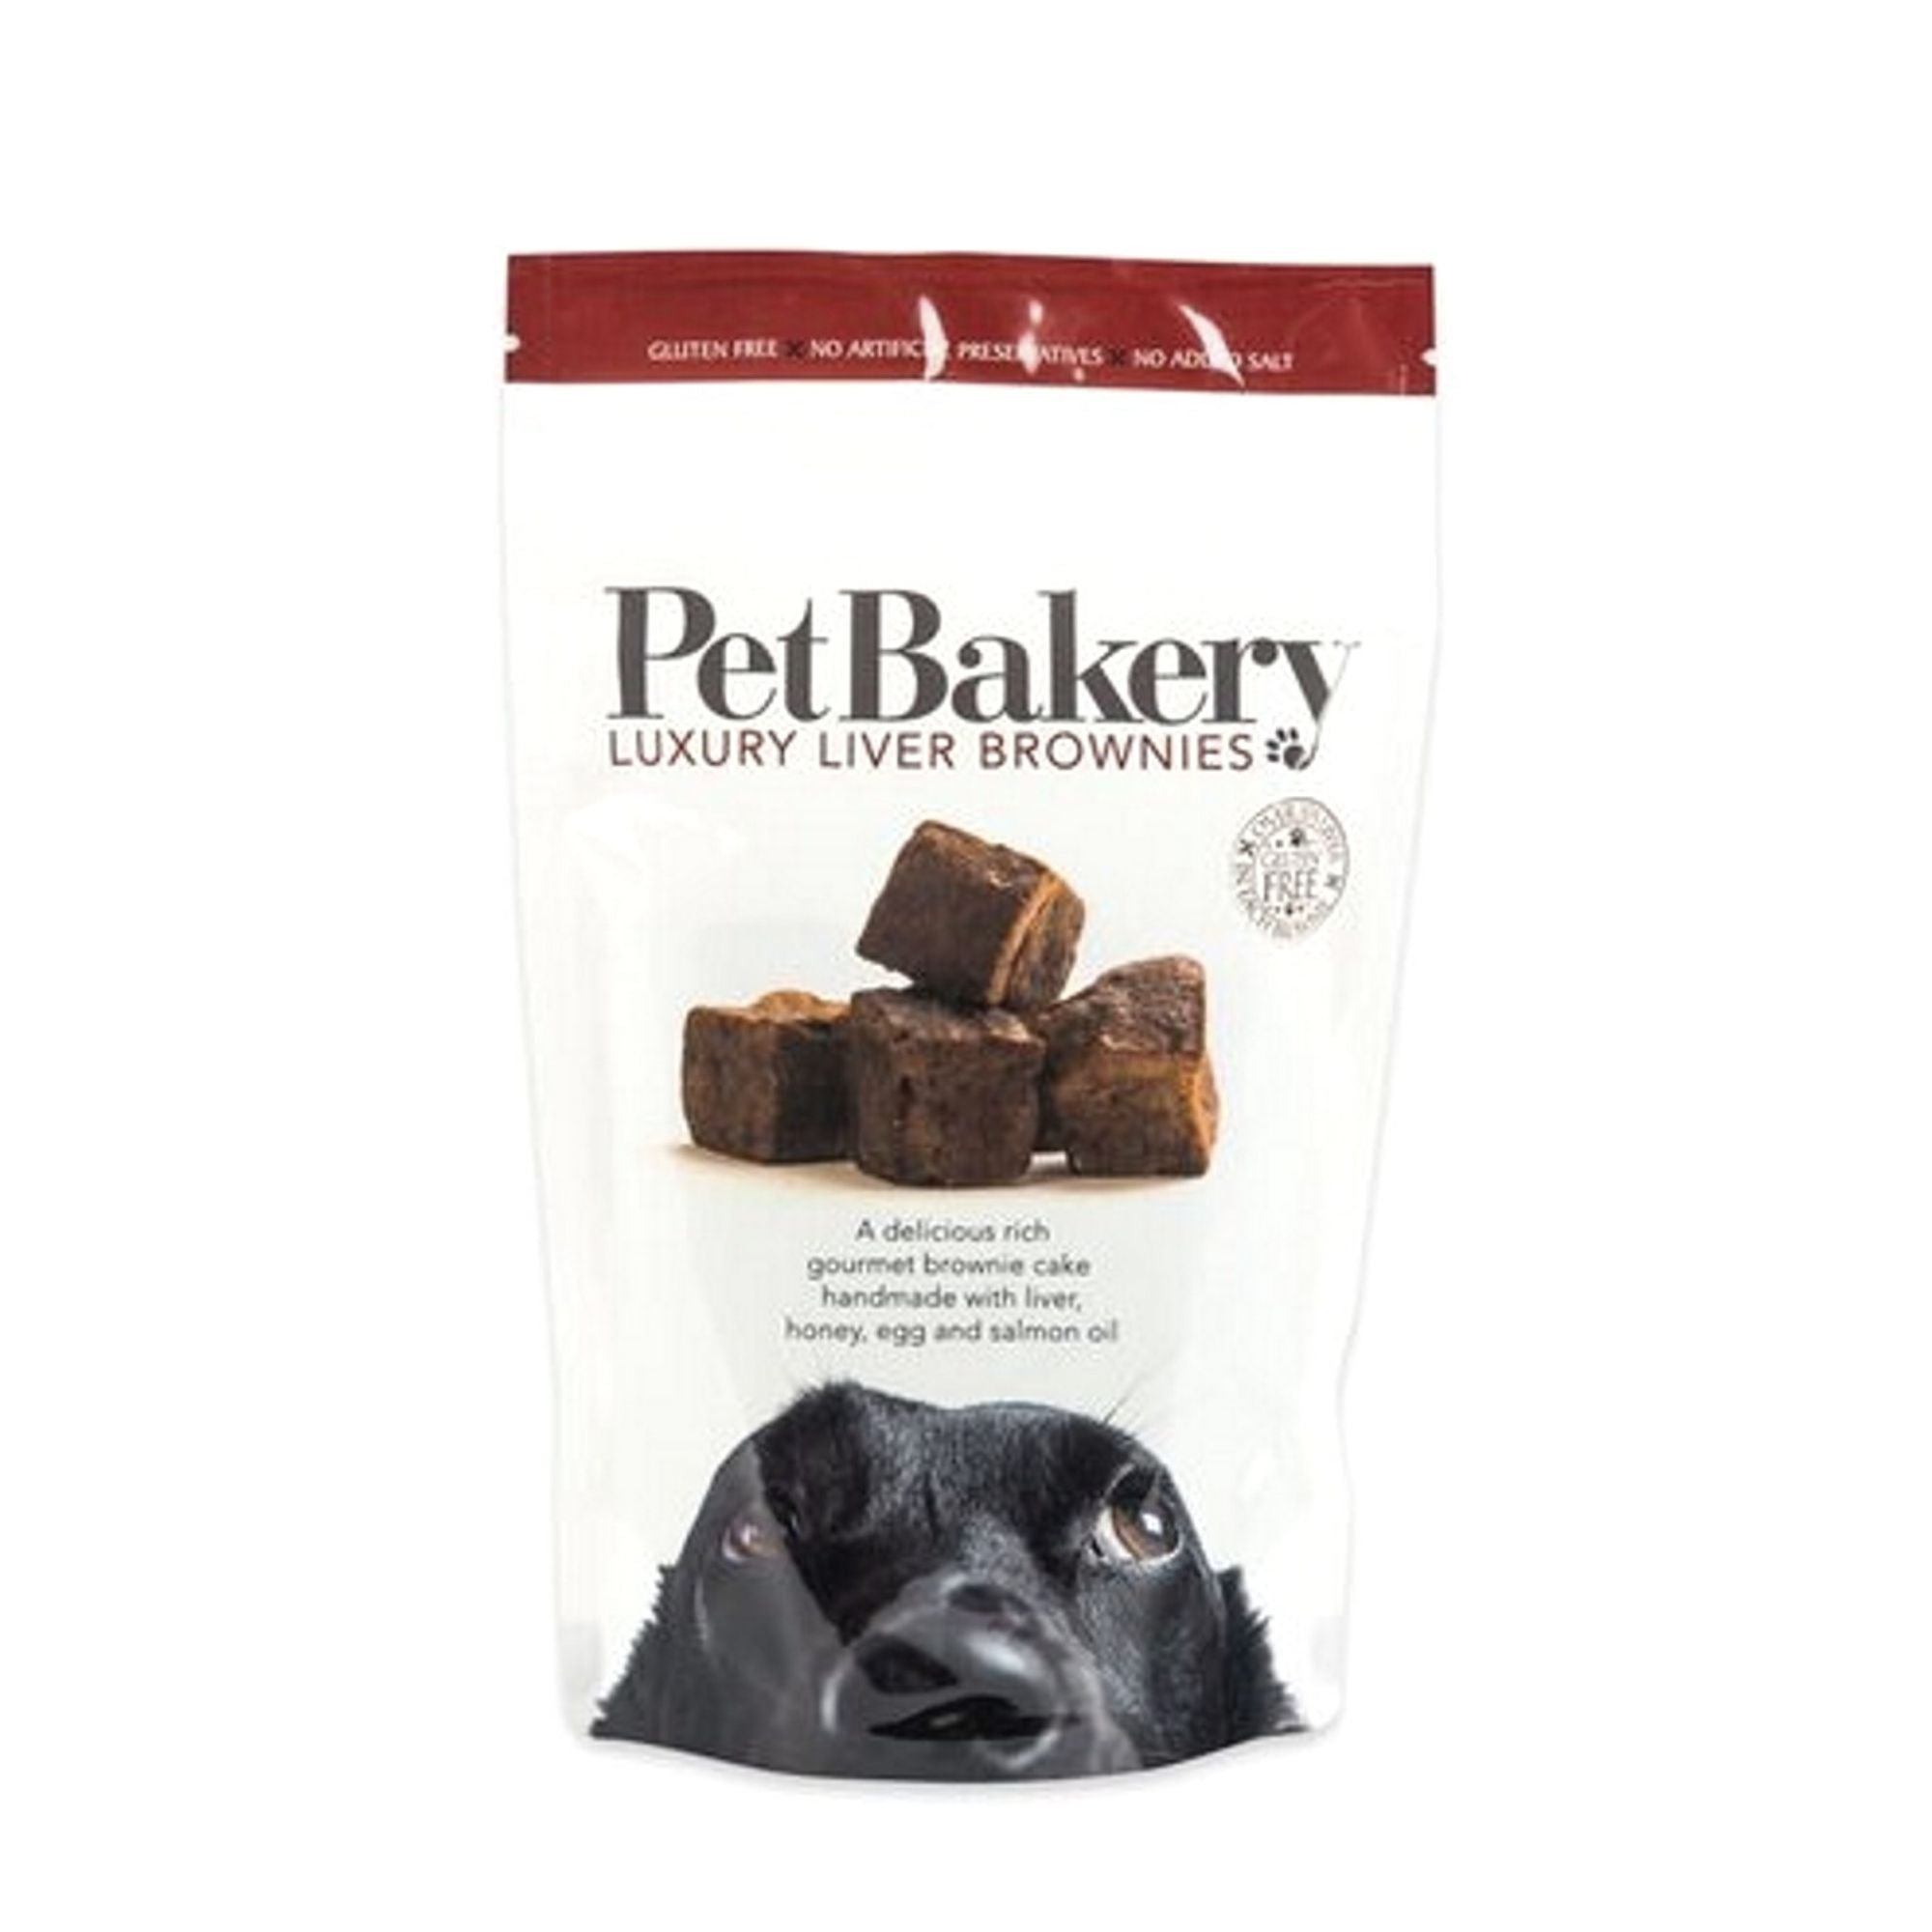 Pet Bakery Luxury Liver Brownies Dog Treats | Barks & Bunnies